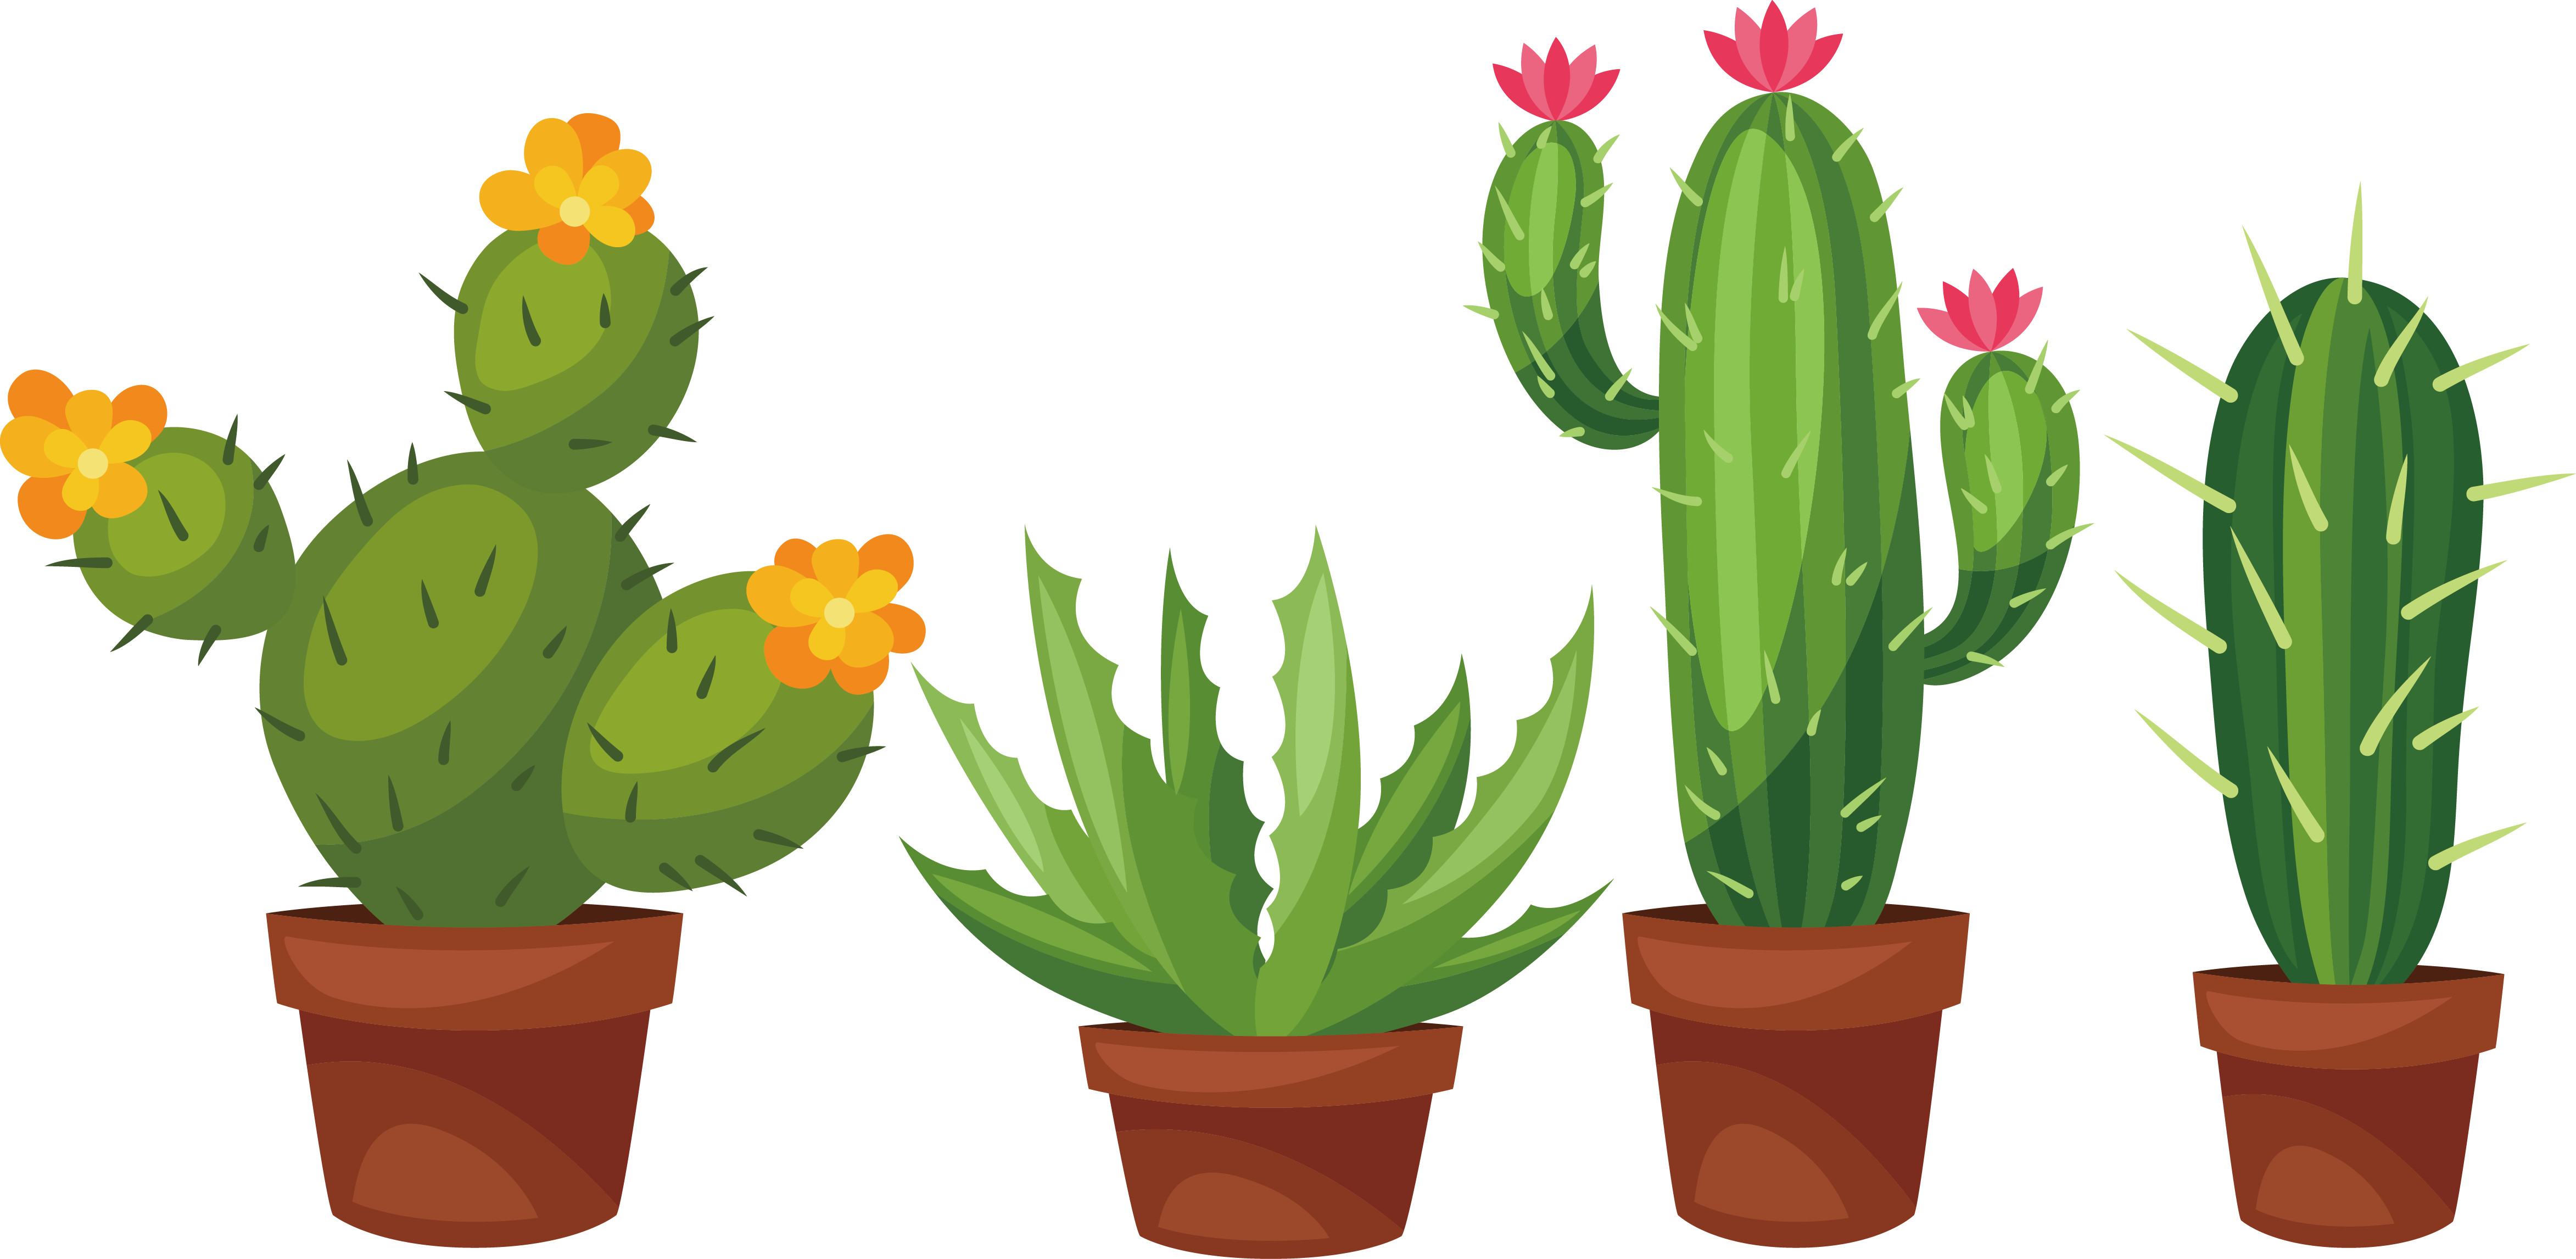 Jelly bean succulant plant clipart black and white graphic download Free succulent clip art clipart images gallery for free ... graphic download